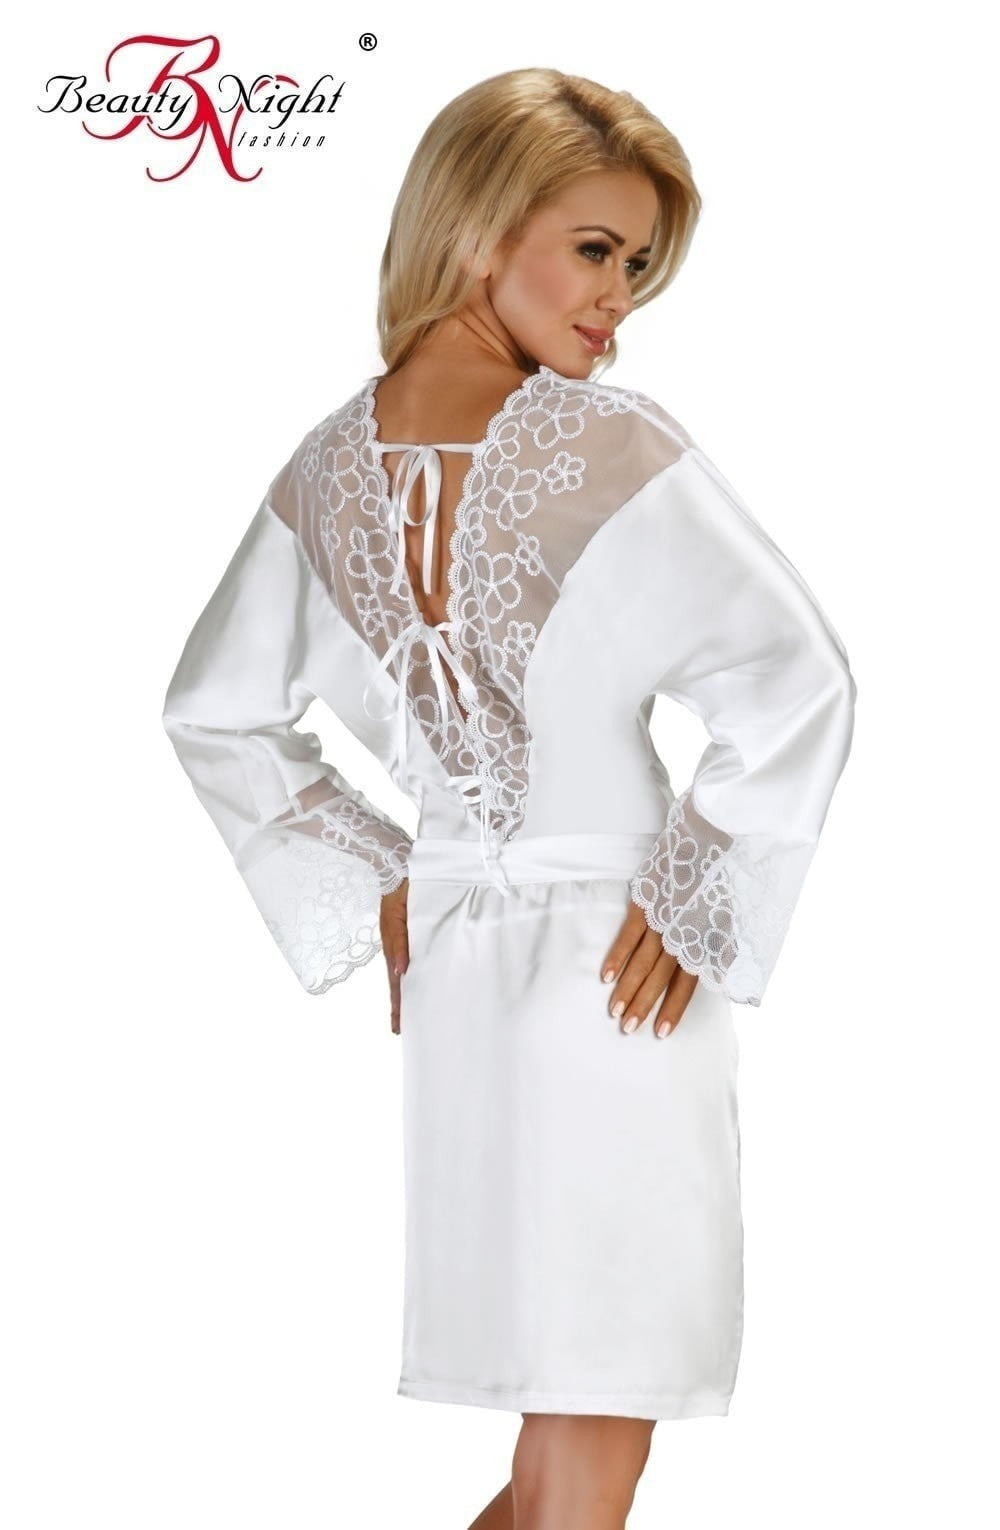 Beauty Night Federica Dressing Gown Set - Dressing Gowns - Beauty Night - Charm and Lace Boutique